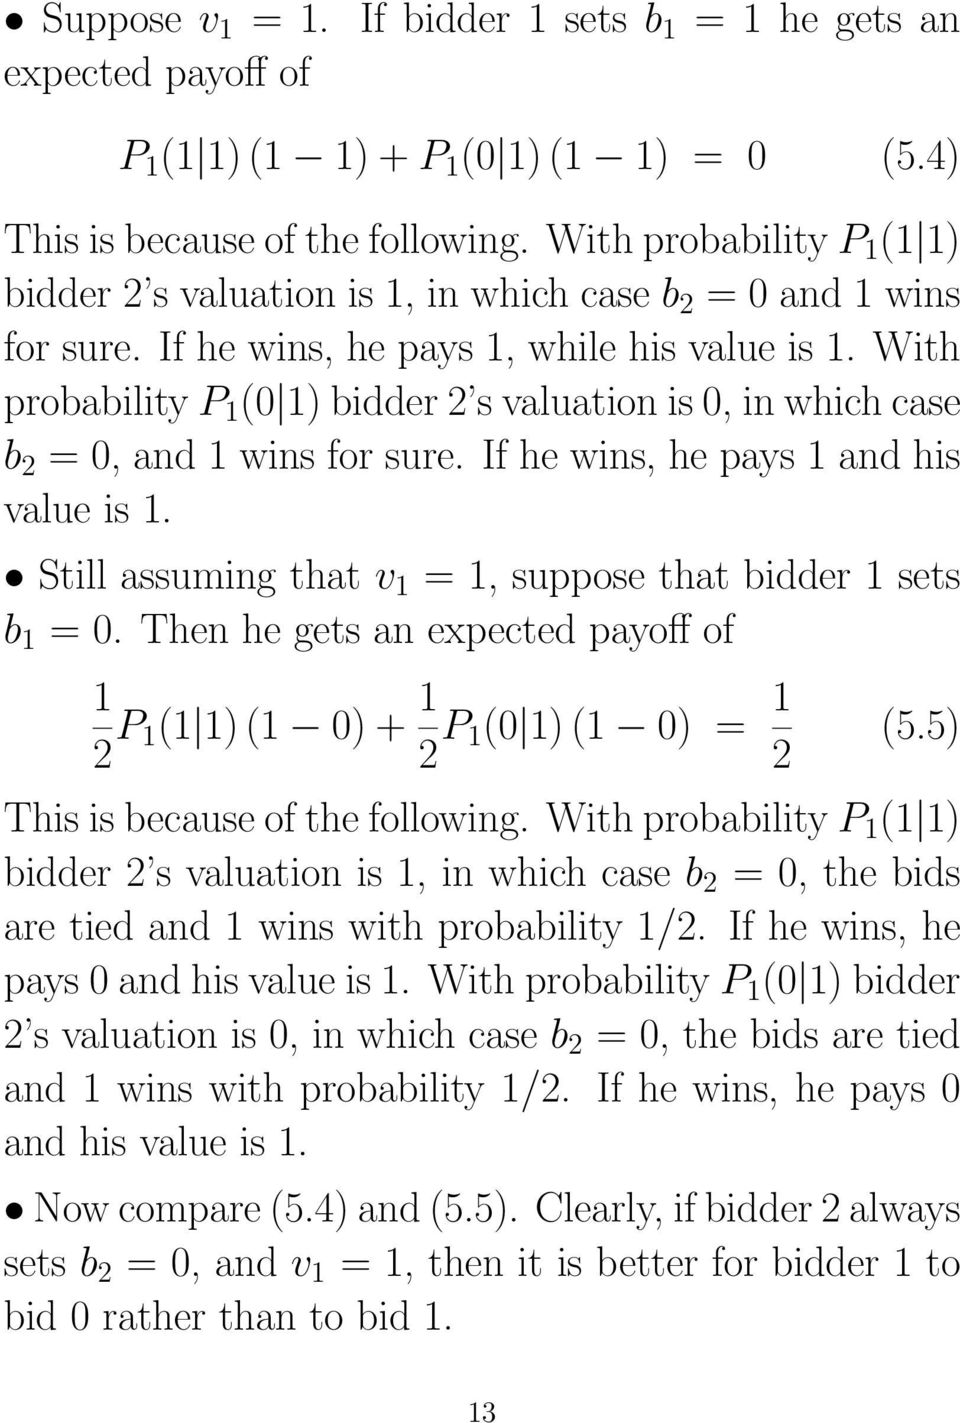 With probability P 1 (0 1) bidder 2 s valuation is 0, in which case b 2 = 0, and 1 wins for sure. If he wins, he pays 1 and his value is 1.